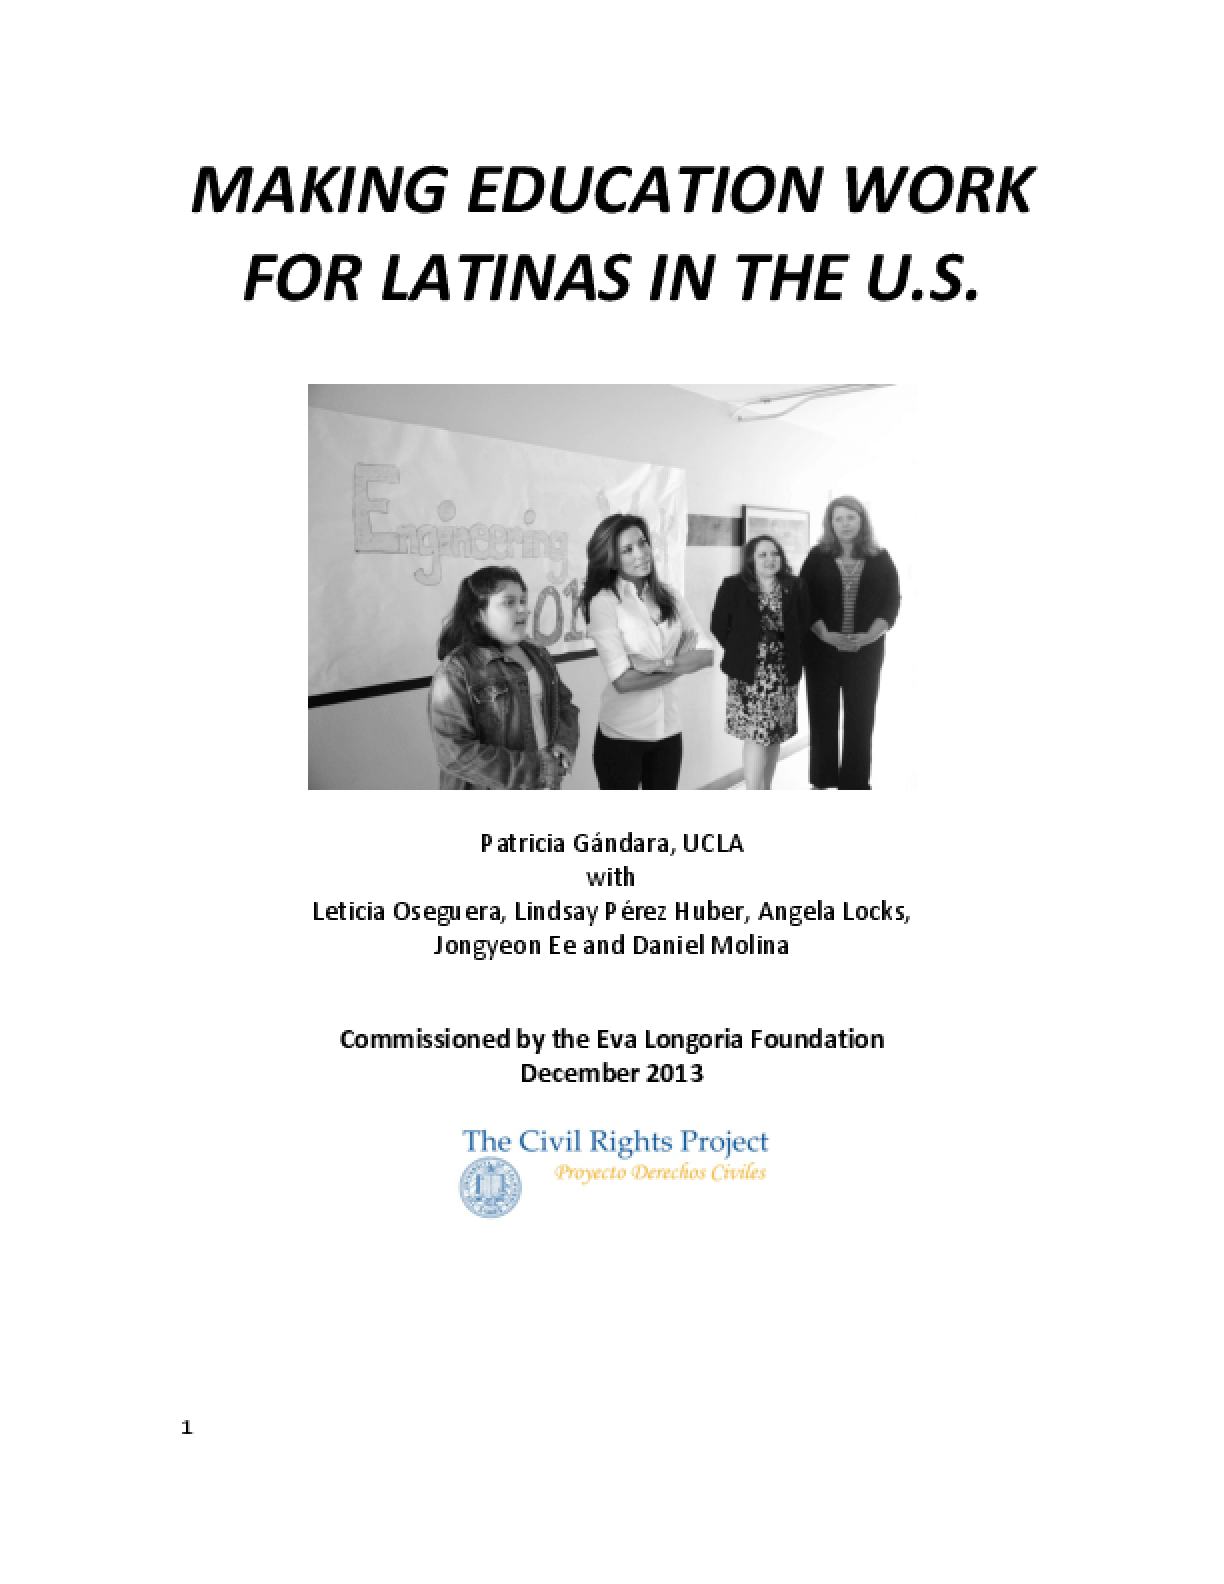 Making Education Work For Latinas in the U.S.